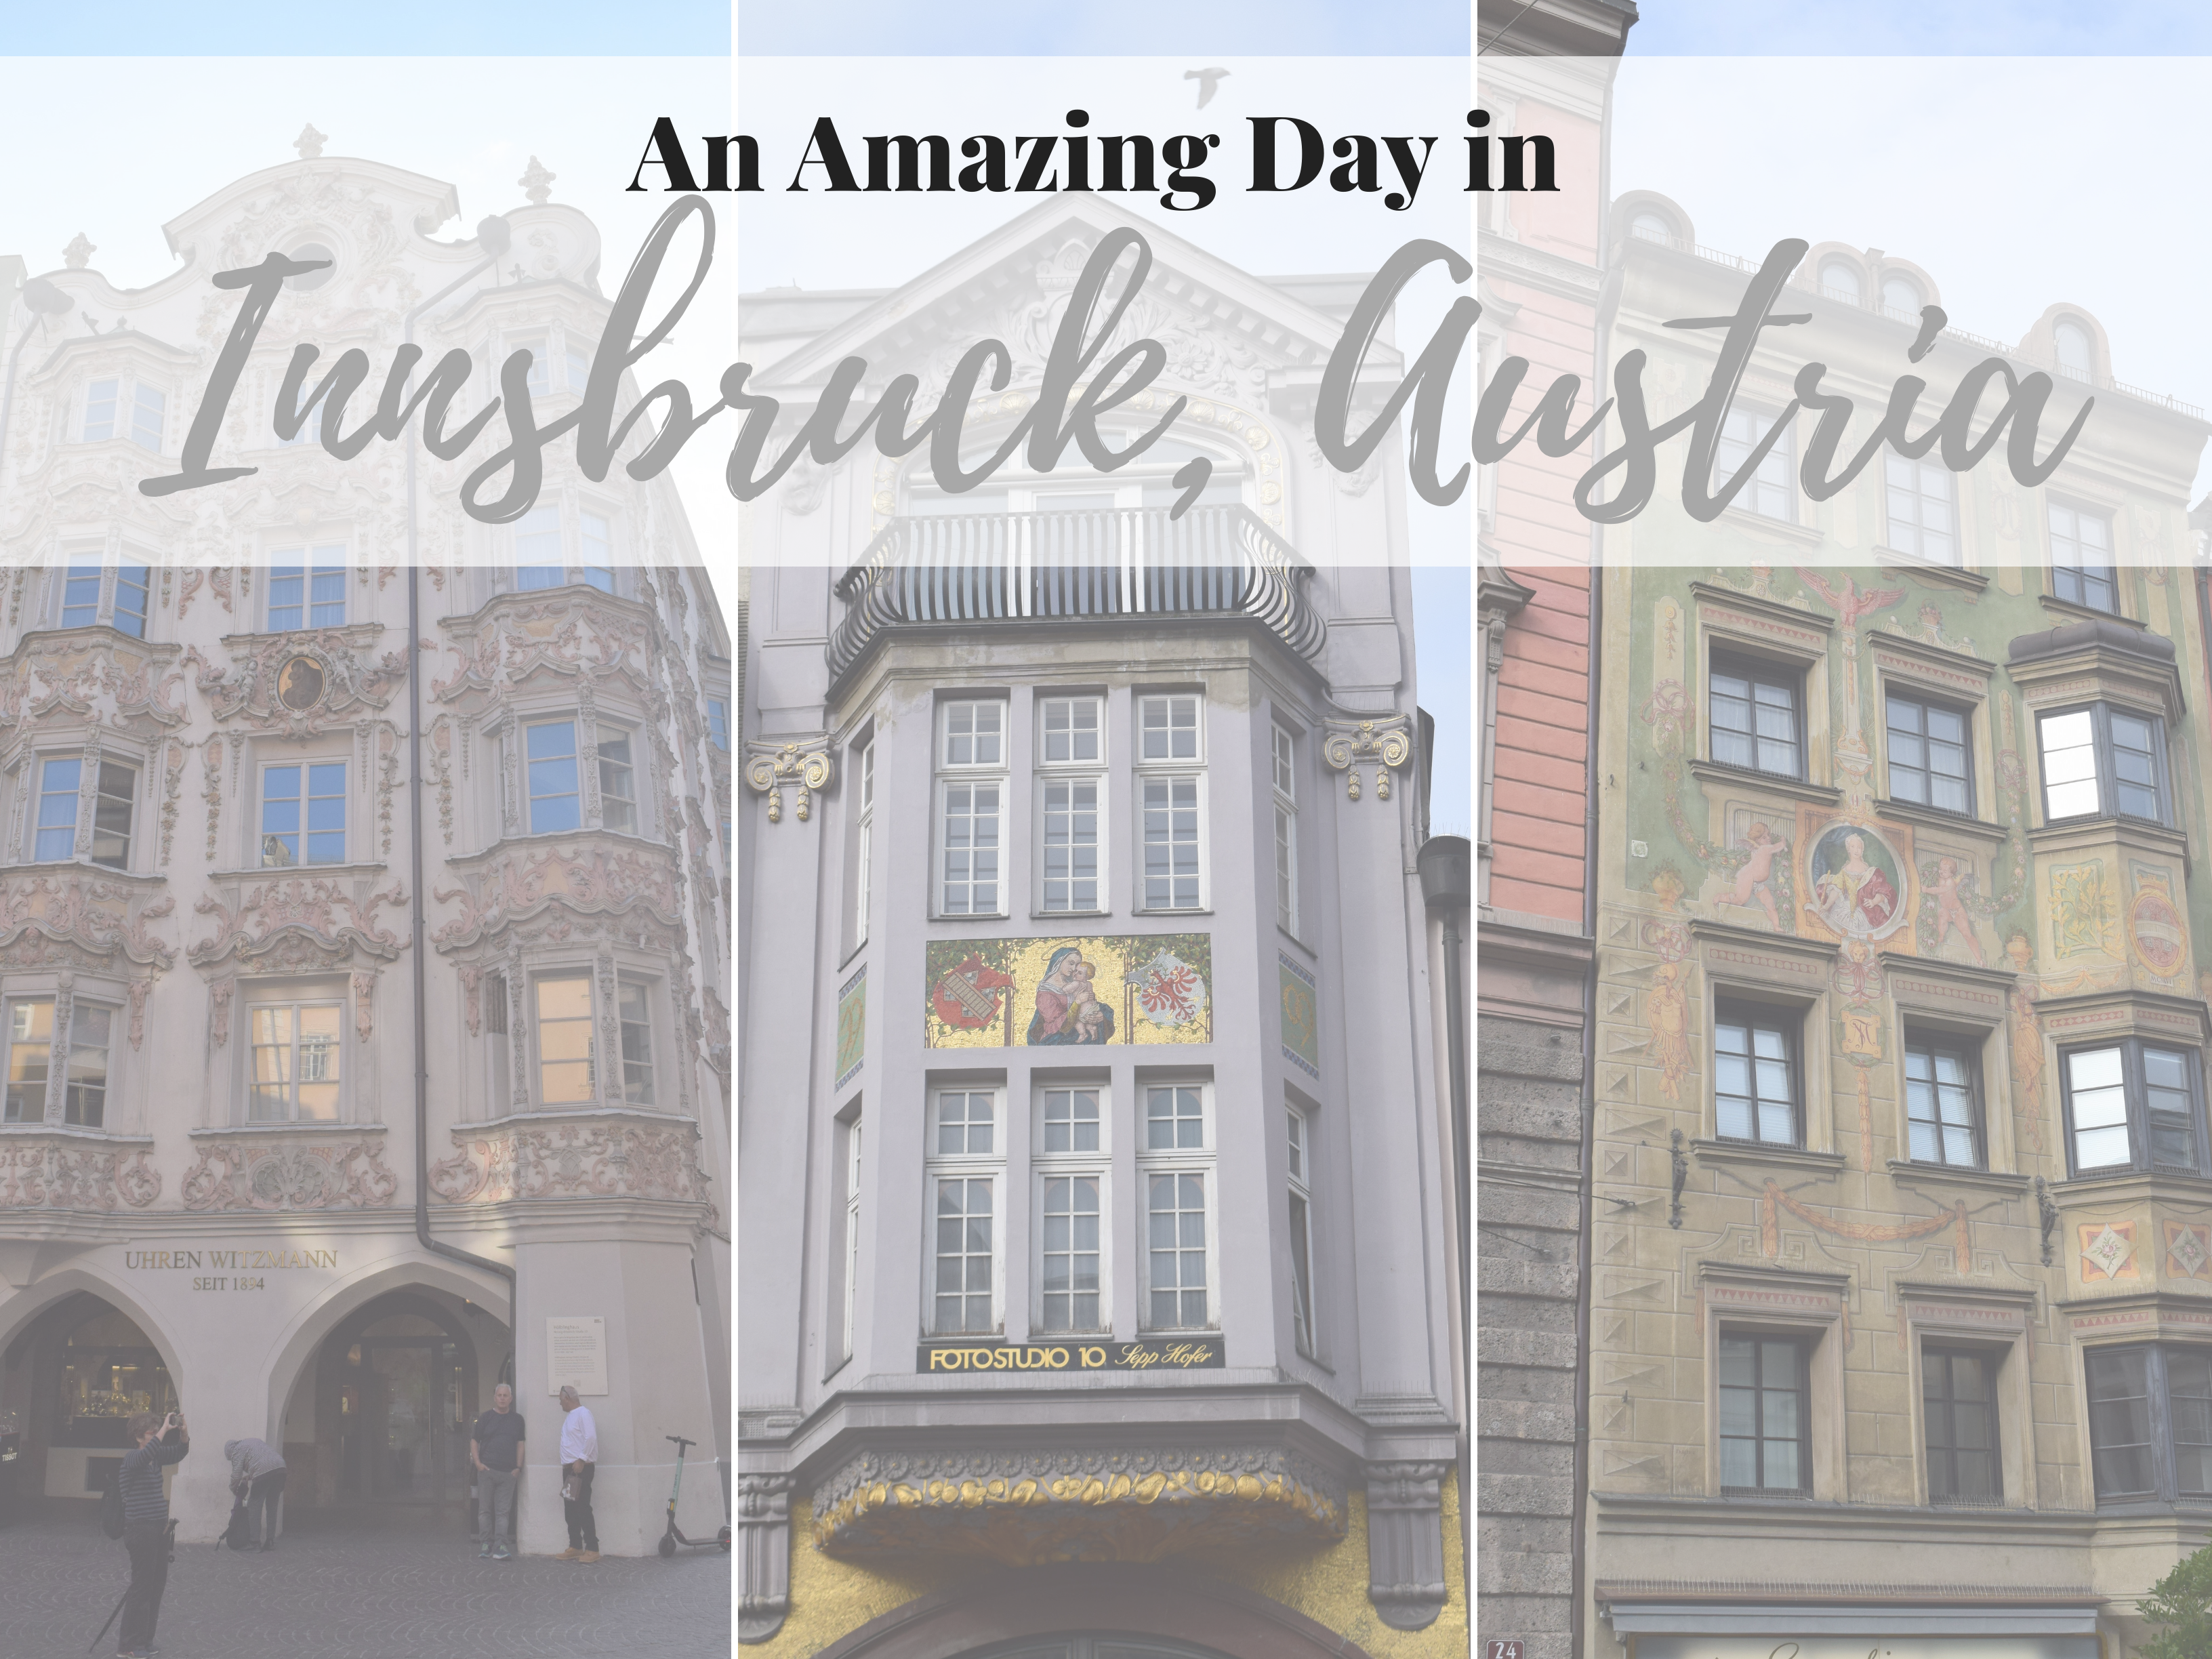 Innsbruck, Austria is beautiful. A must see on a stop to the Alps and in the Tyrol area. ouritalianjourney.com